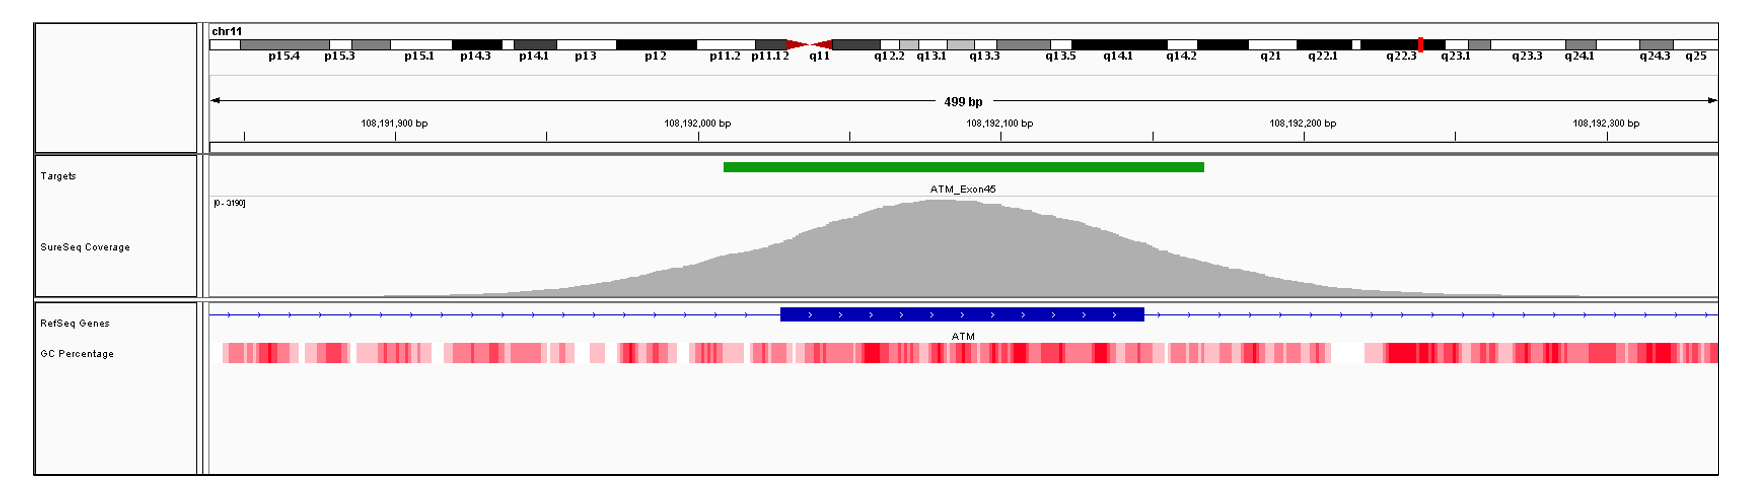 ATM Exon 45 (hg19 chr11:108192028-108192147). Depth of coverage per base (grey). Targeted region (green). Gene coding region as defined by RefSeq (blue). GC percentage (red). Image